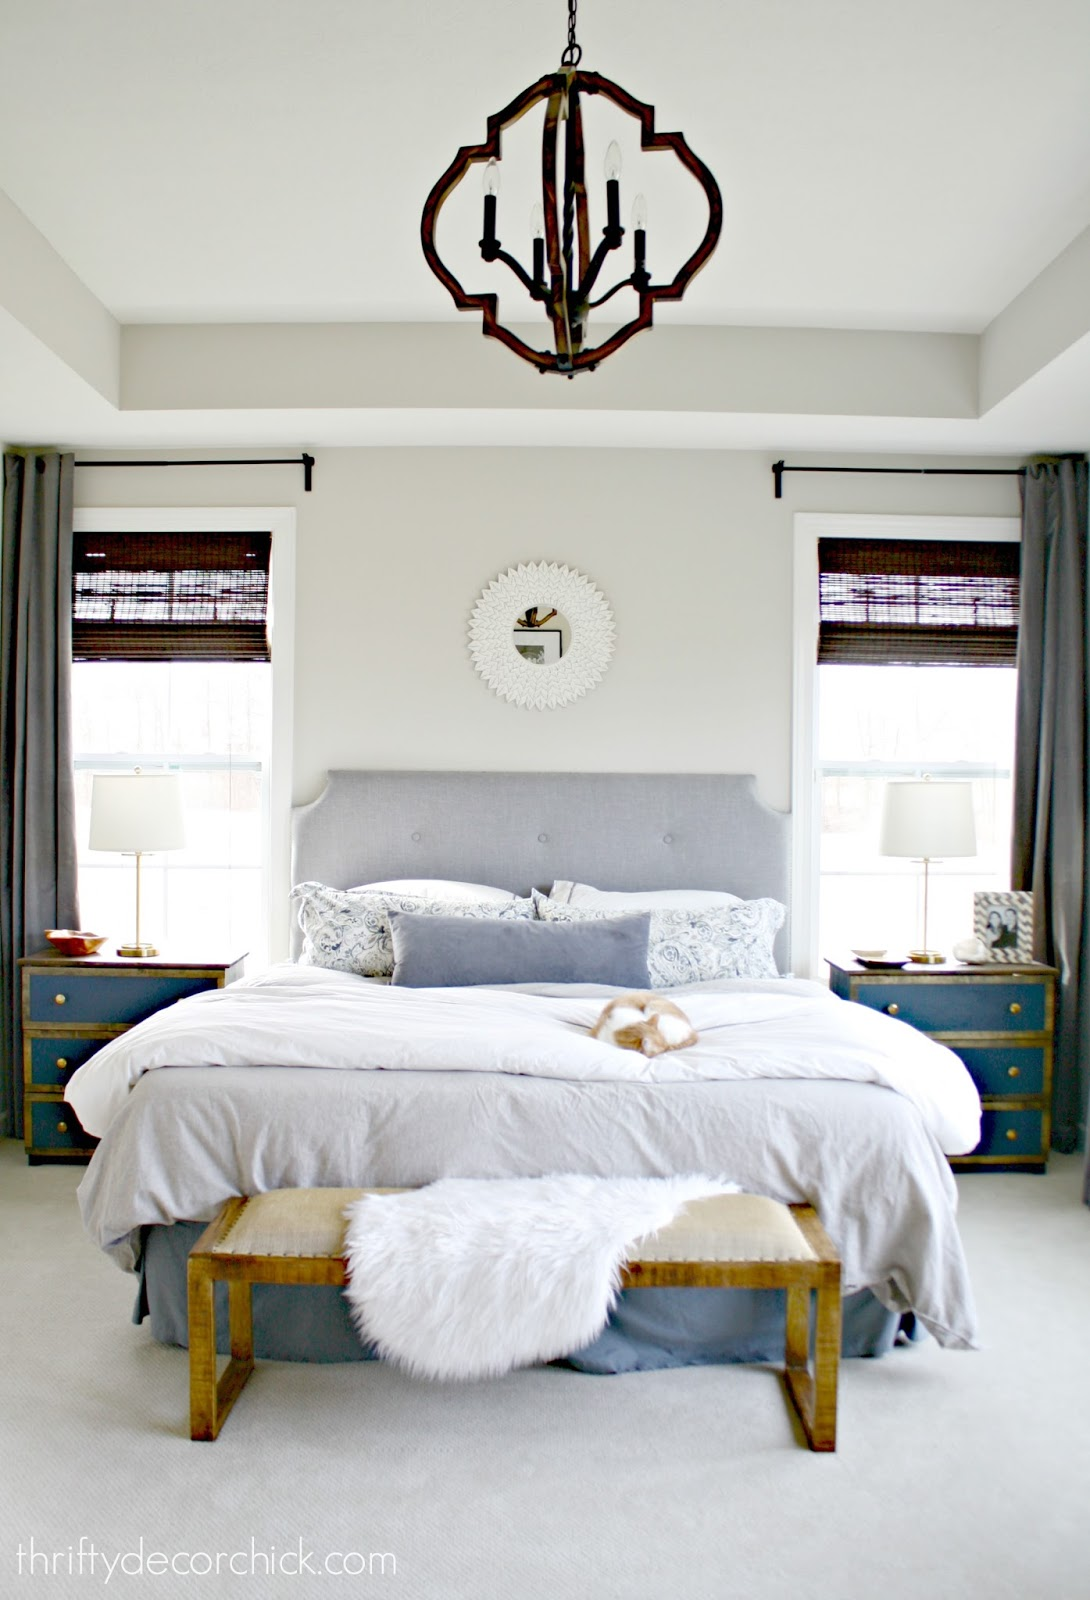 Bedroom Decor Above Bed